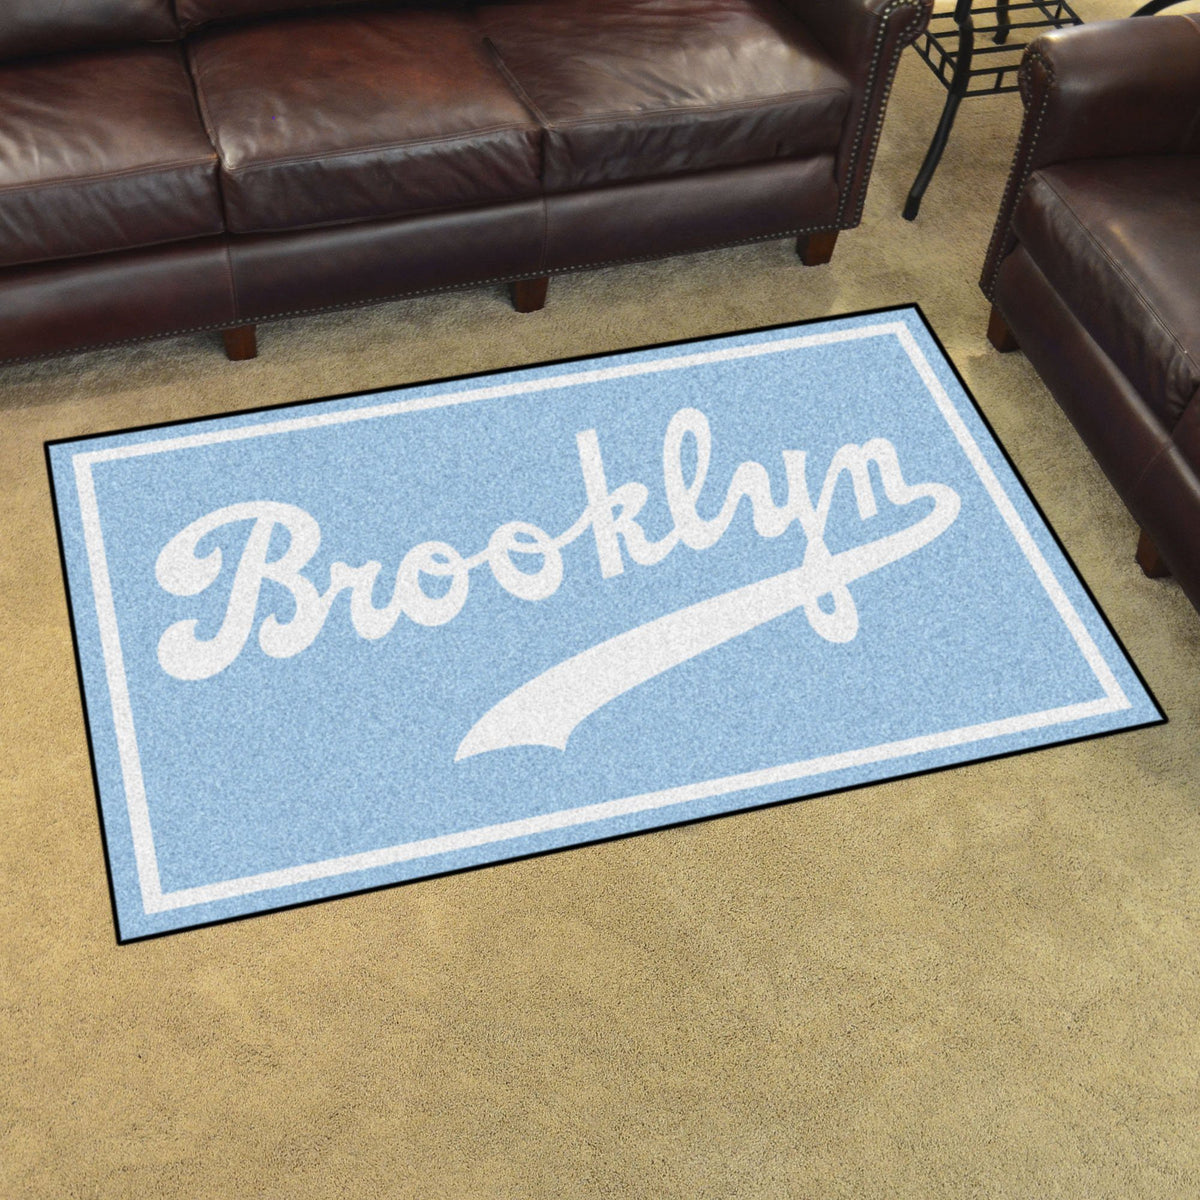 MLB Retro - 4' x 6' Rug MLB Retro Mats, Plush Rugs, 4x6 Rug, MLB, Home Fan Mats Brooklyn Dodgers